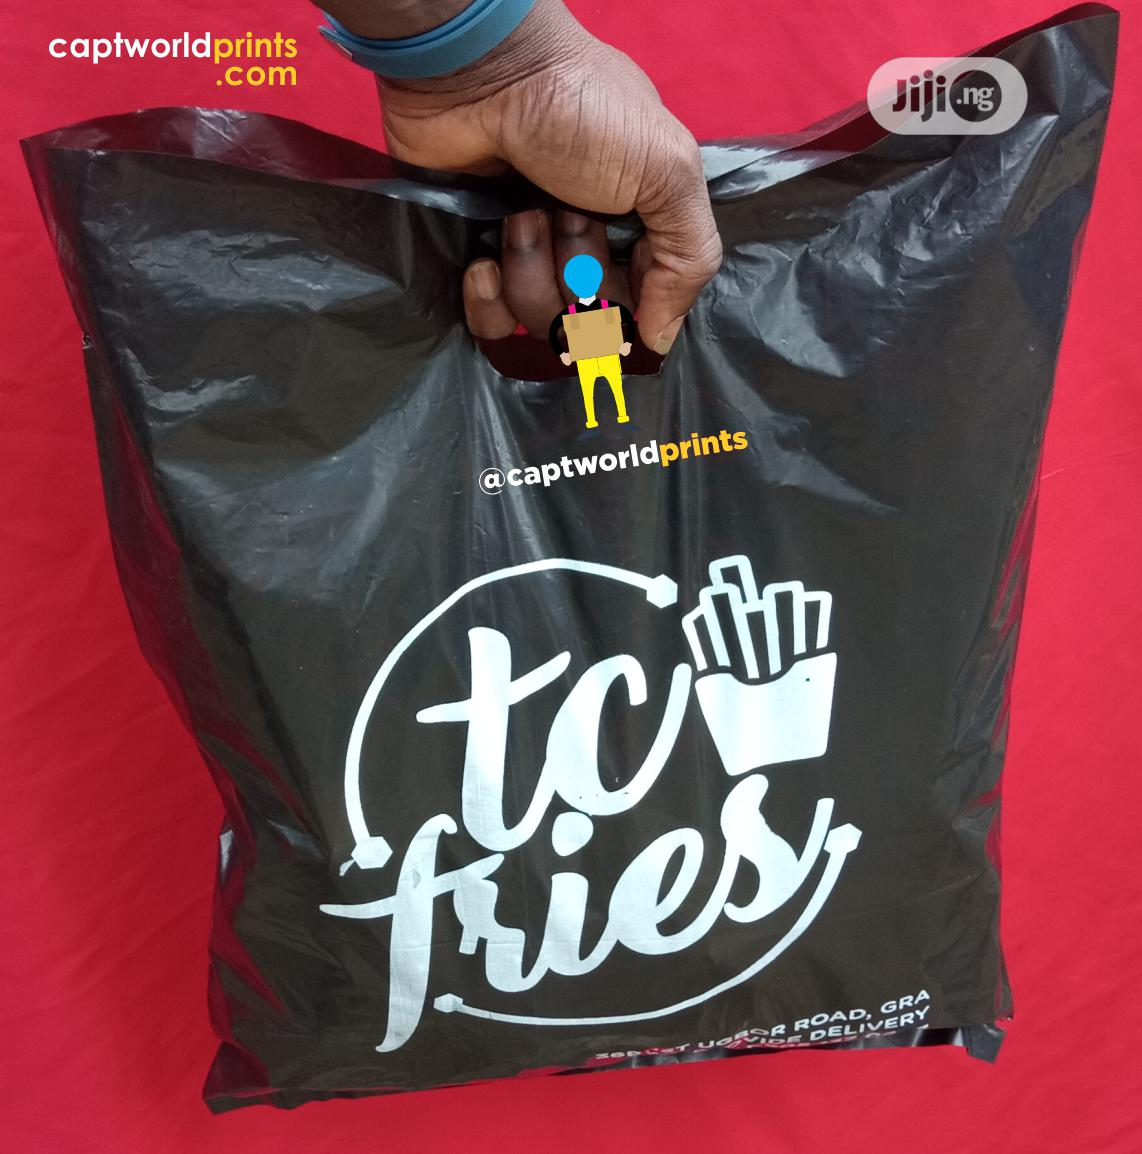 Small Size Nylon Bags   Printing Services for sale in Shomolu, Lagos State, Nigeria